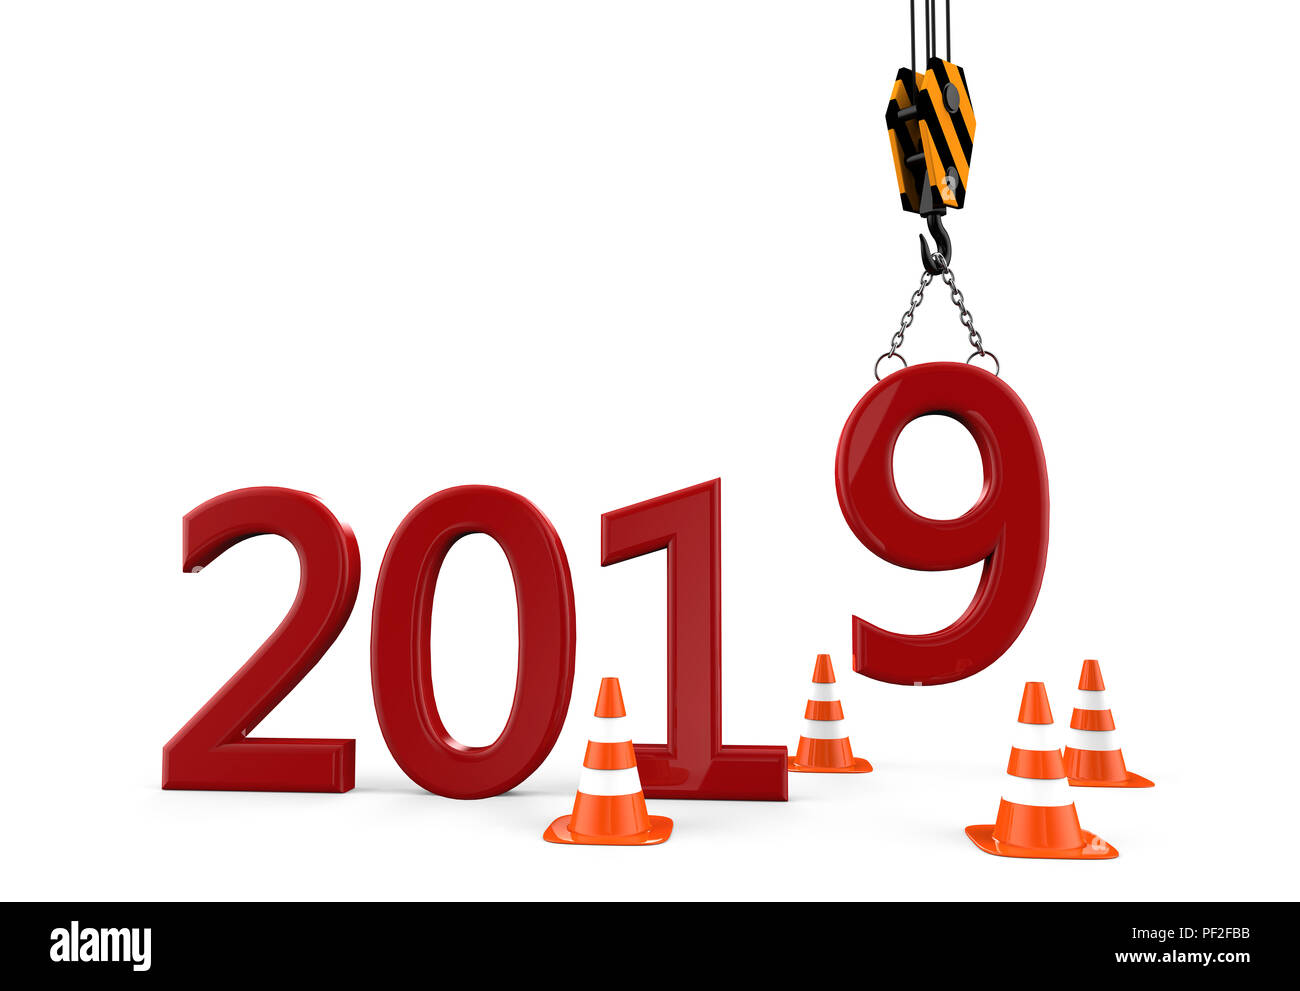 New Year work in progress 2019 isolated on a white background: 3D illustration - Stock Image